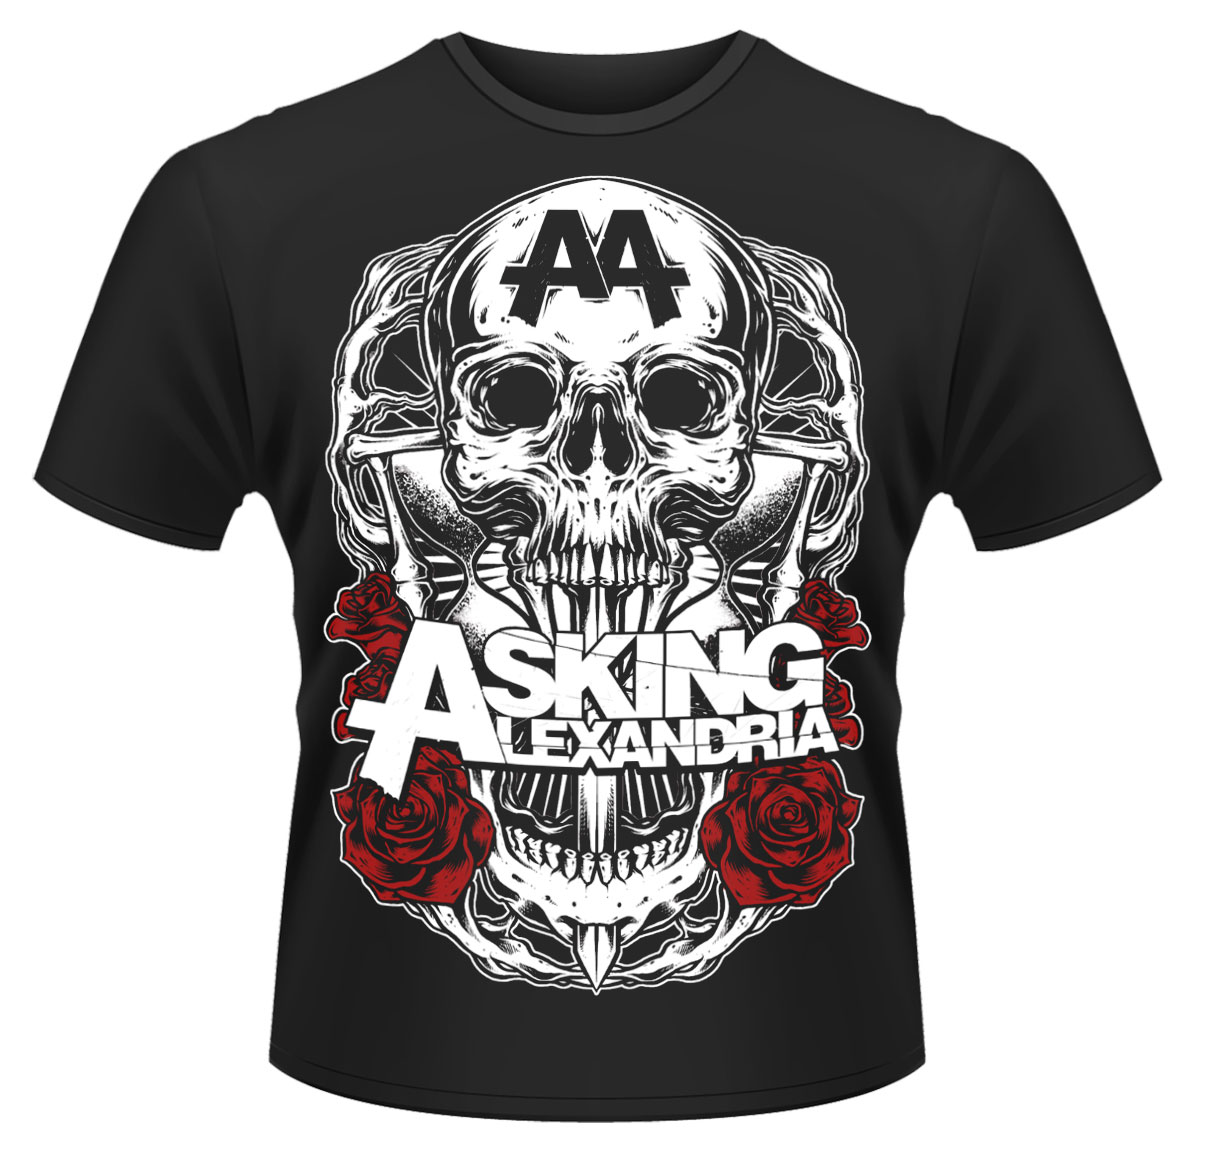 Asking-Alexandria-Black-Shadow-T-Shirt-NEW-OFFICIAL